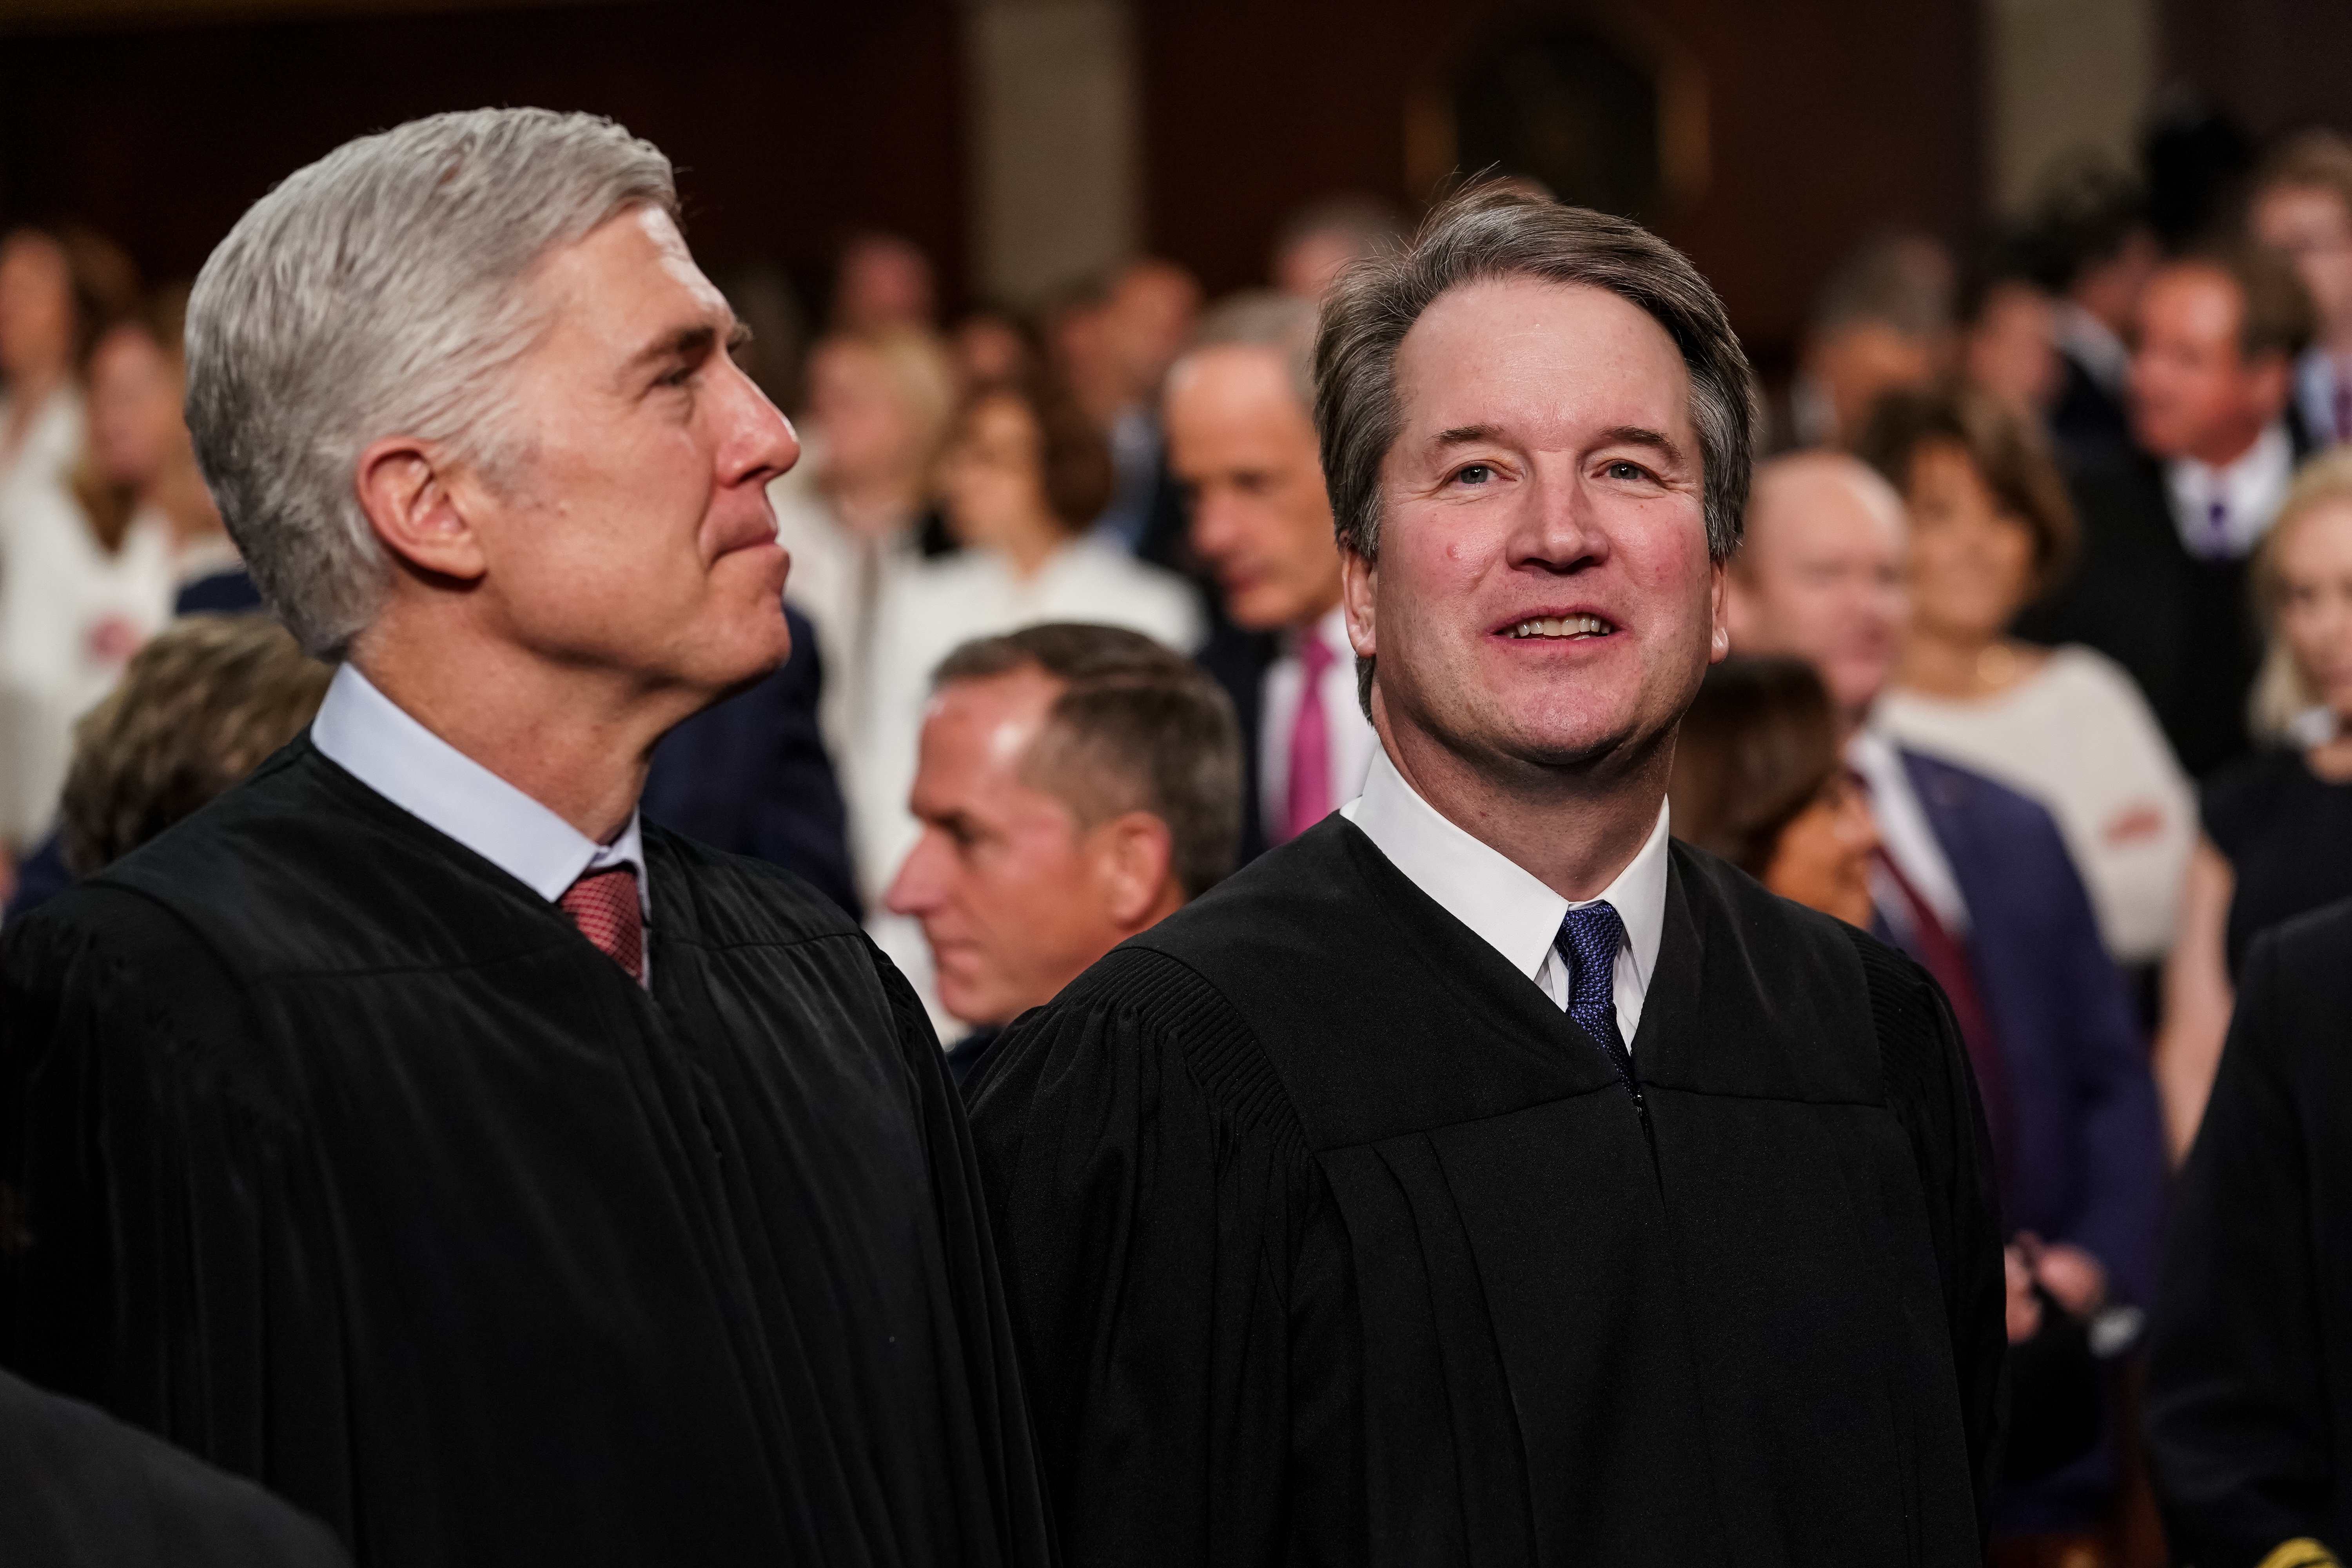 Justices Neil Gorsuch and Brett Kavanaugh attend the State of the Union address on February 5, 2019. (Doug Mills/Pool/Getty Images)